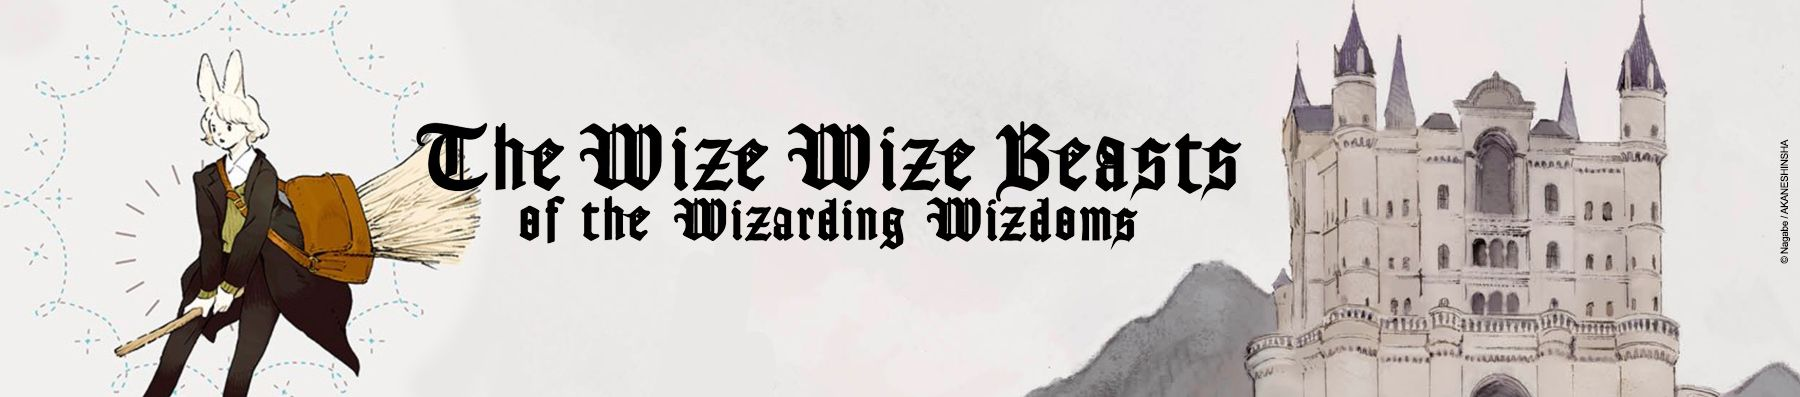 Dossier manga - The Wize Wize Beasts of The Wizarding Wizdoms